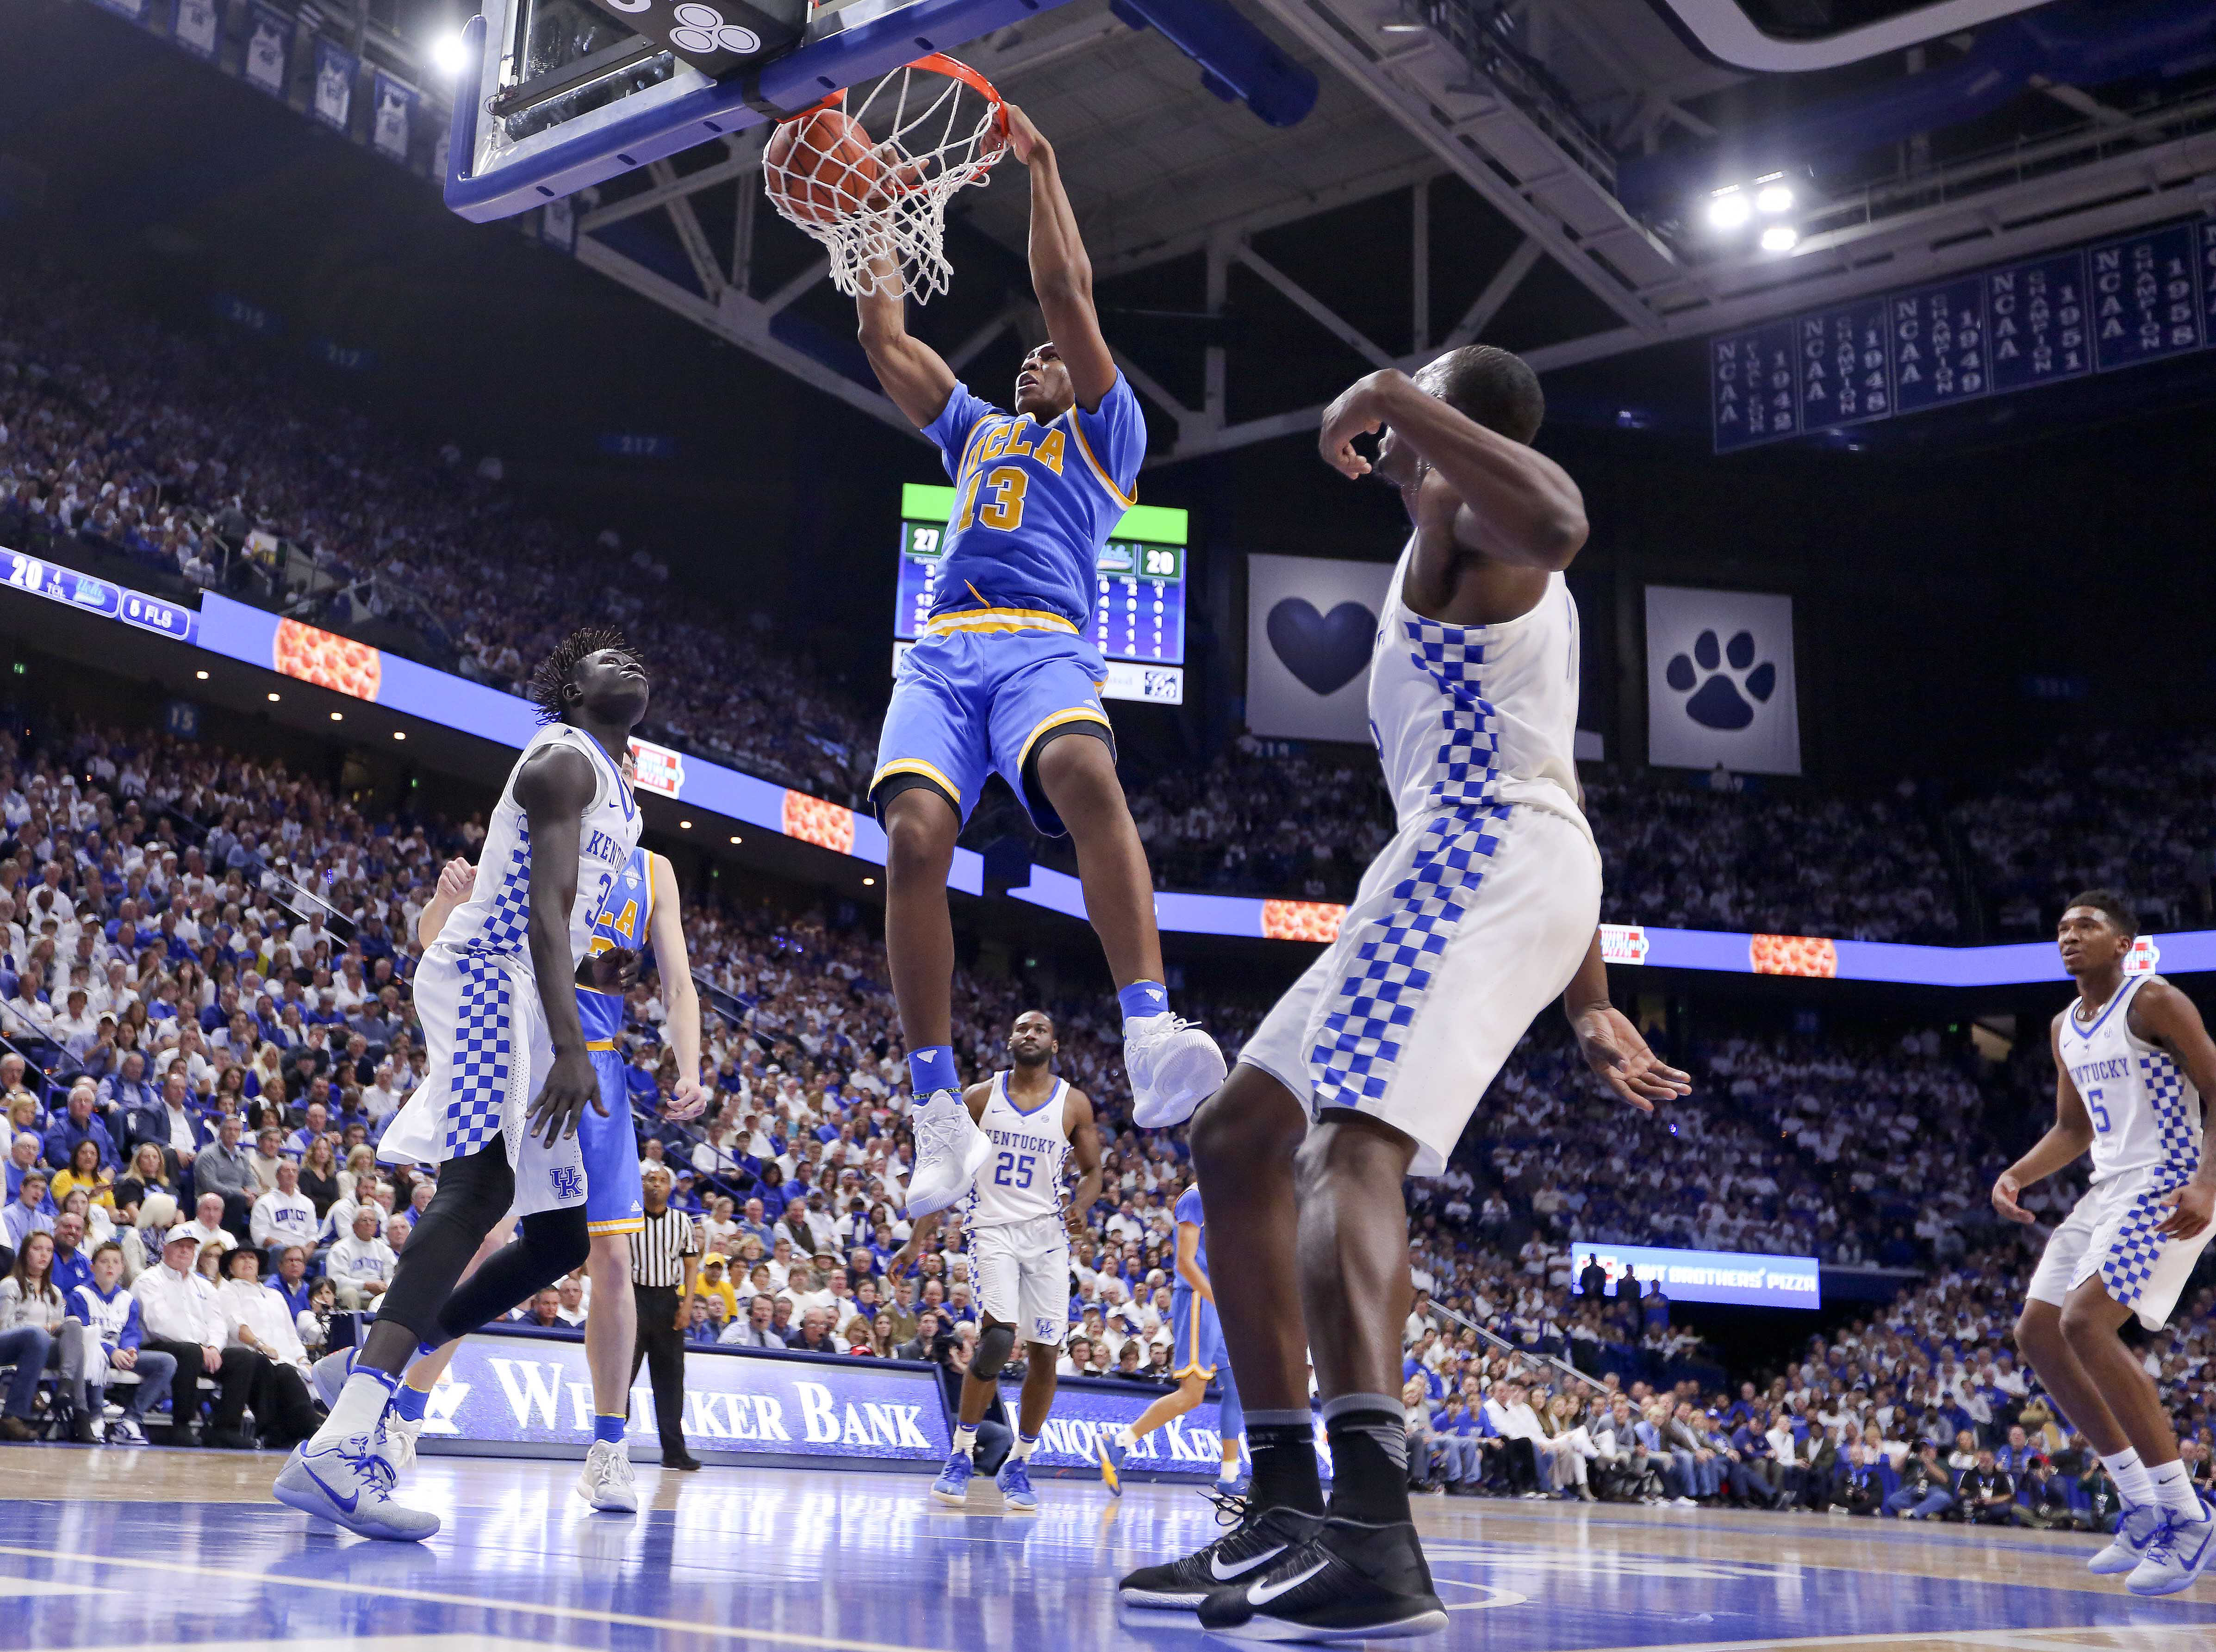 Kentucky Basketball Preview Wildcats Will Be Elite Again: NCAA Tournament: UCLA Basketball Vs. Kentucky